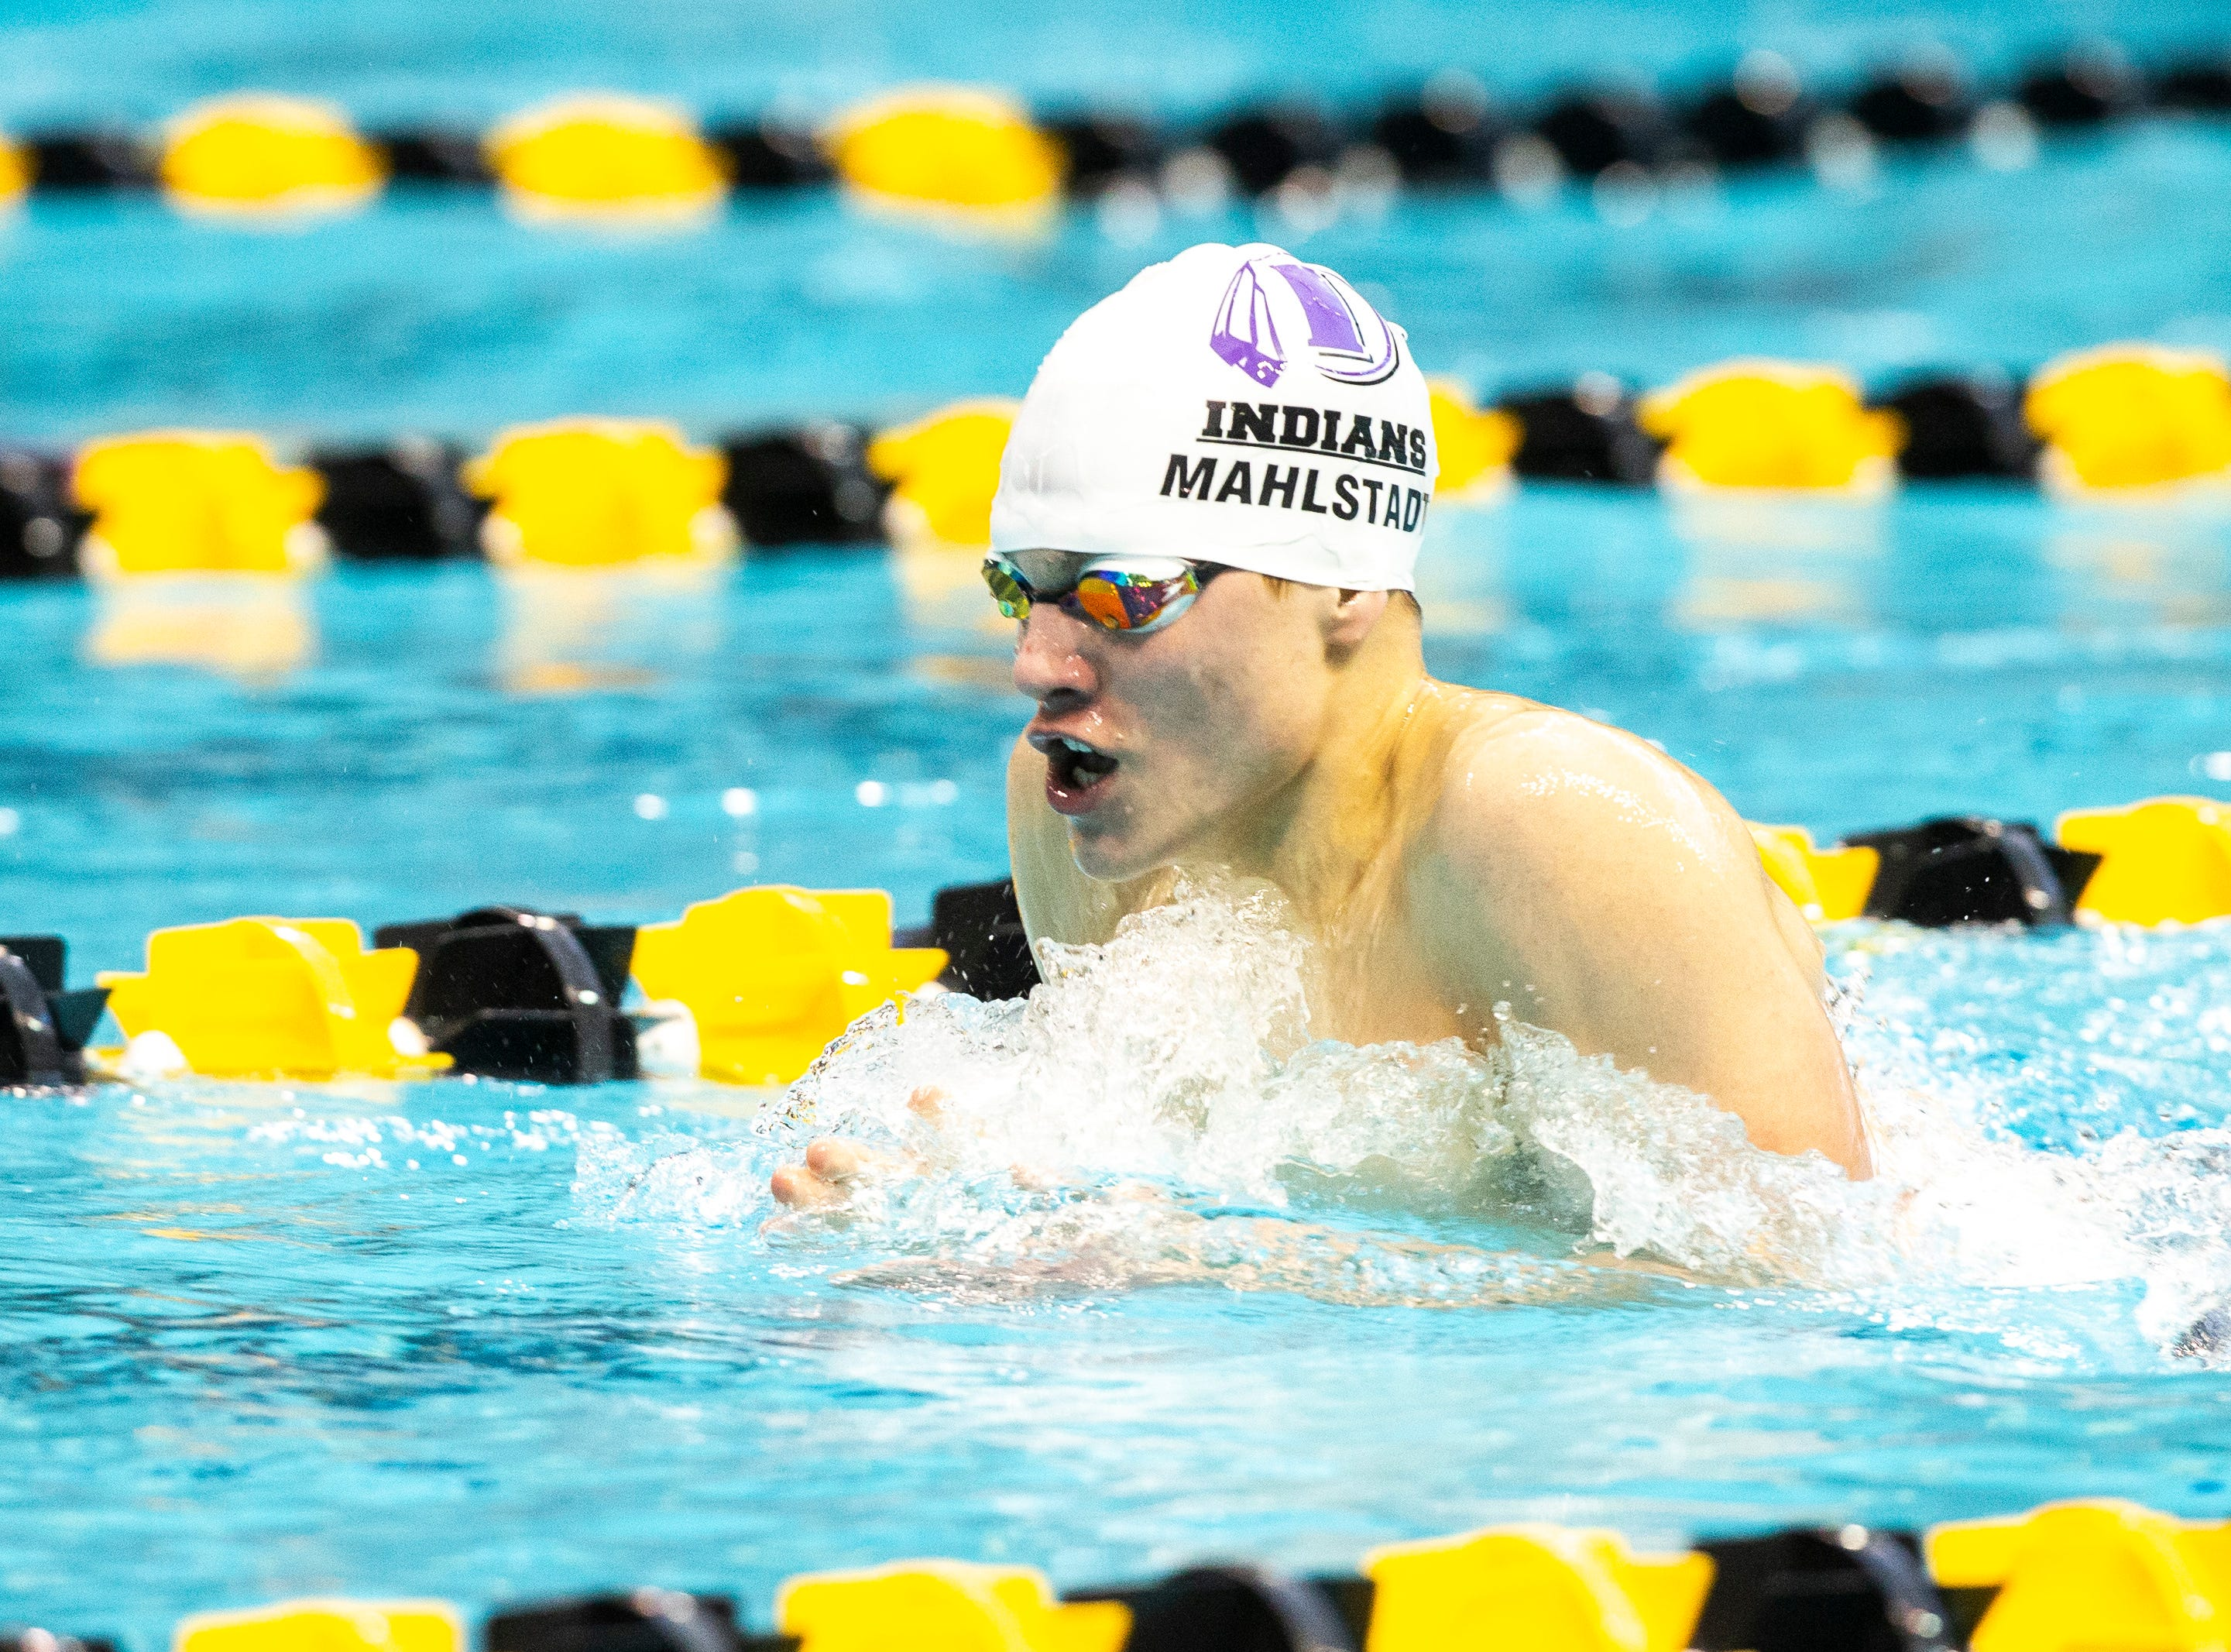 Indianola senior Jaxson Mahlstadt competes in the second heat of the 200 yard individual medley during the Iowa boys' state swimming regional championship meet on Saturday, Feb. 9, 2019 at Campus Recreation and Wellness Center on the University of Iowa campus in Iowa City, Iowa. Mahlstadt finished sixth overall, with a time of 1:57.14.